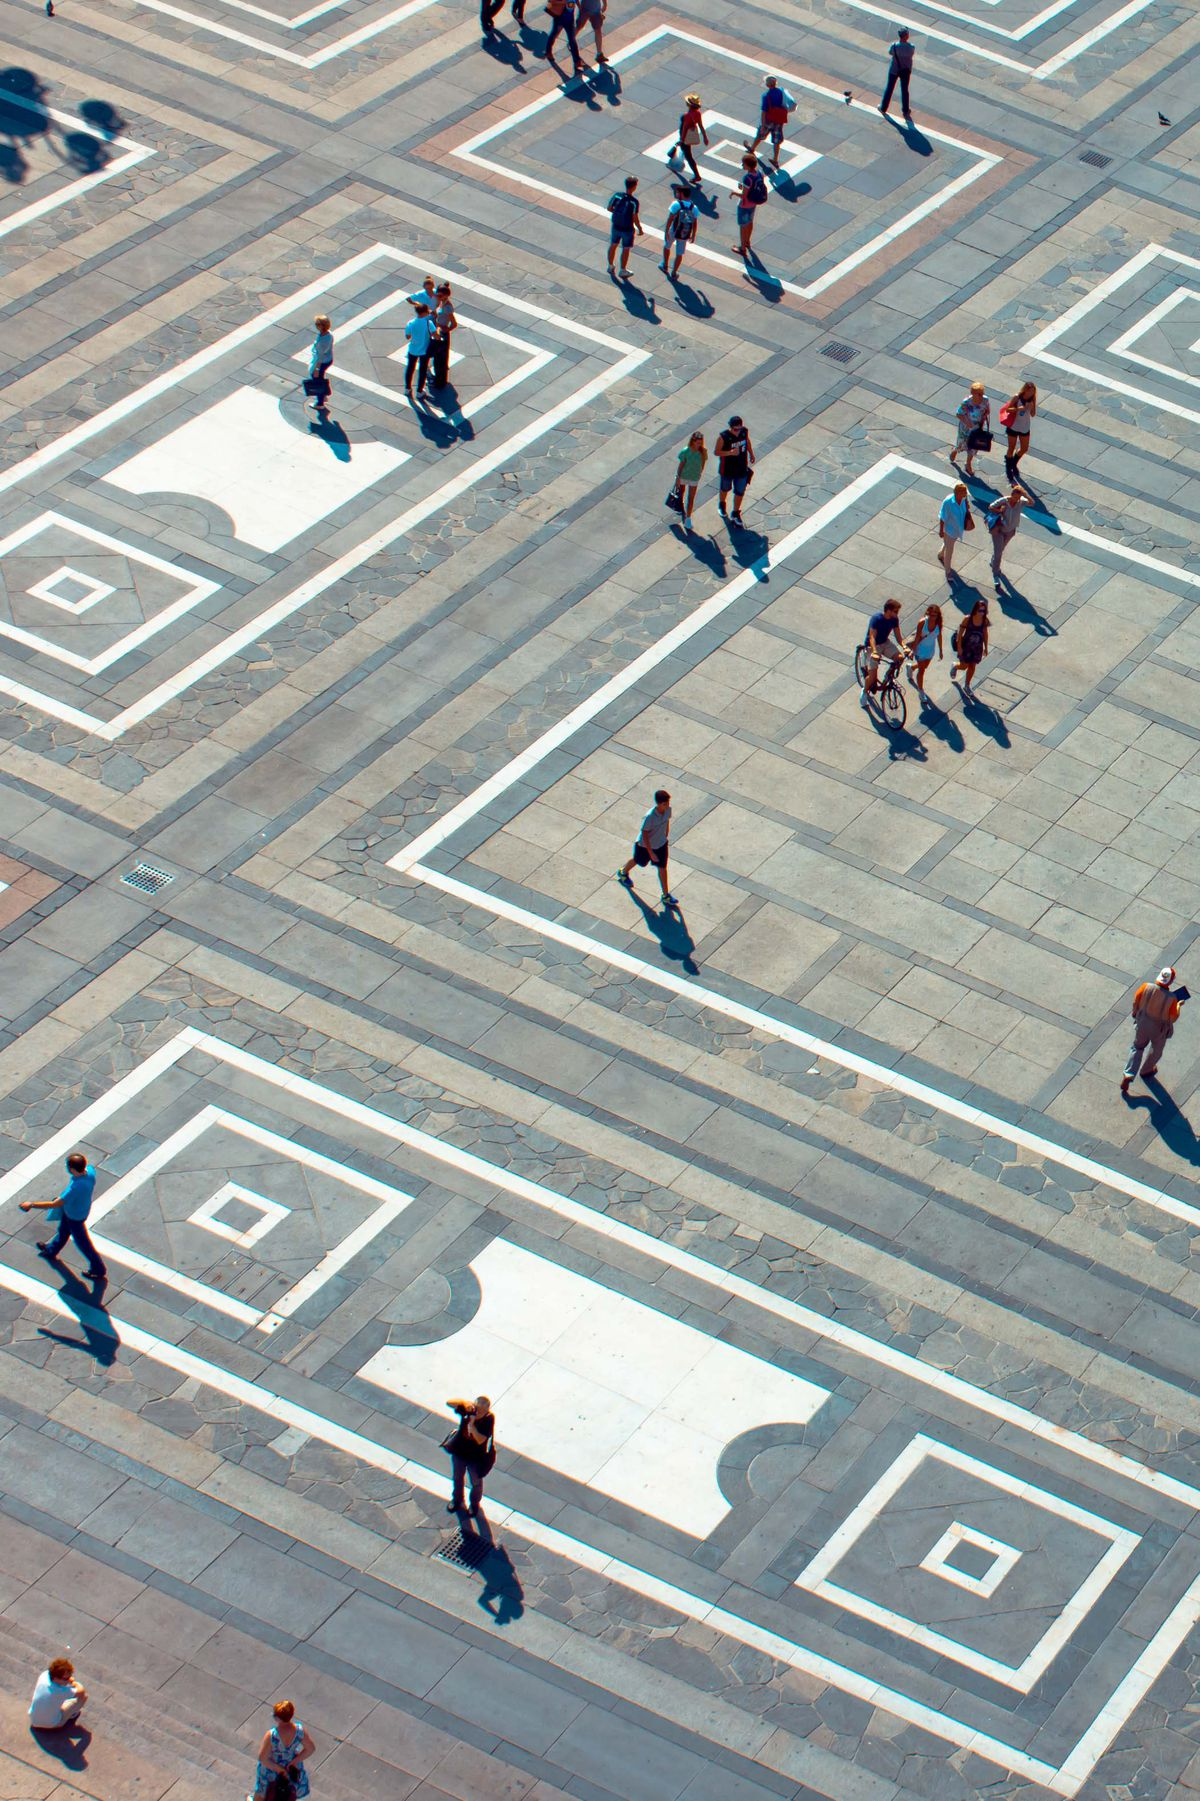 An aerial view of a pedestrian plaza. The ground has a pattern and there are people walking on the plaza.